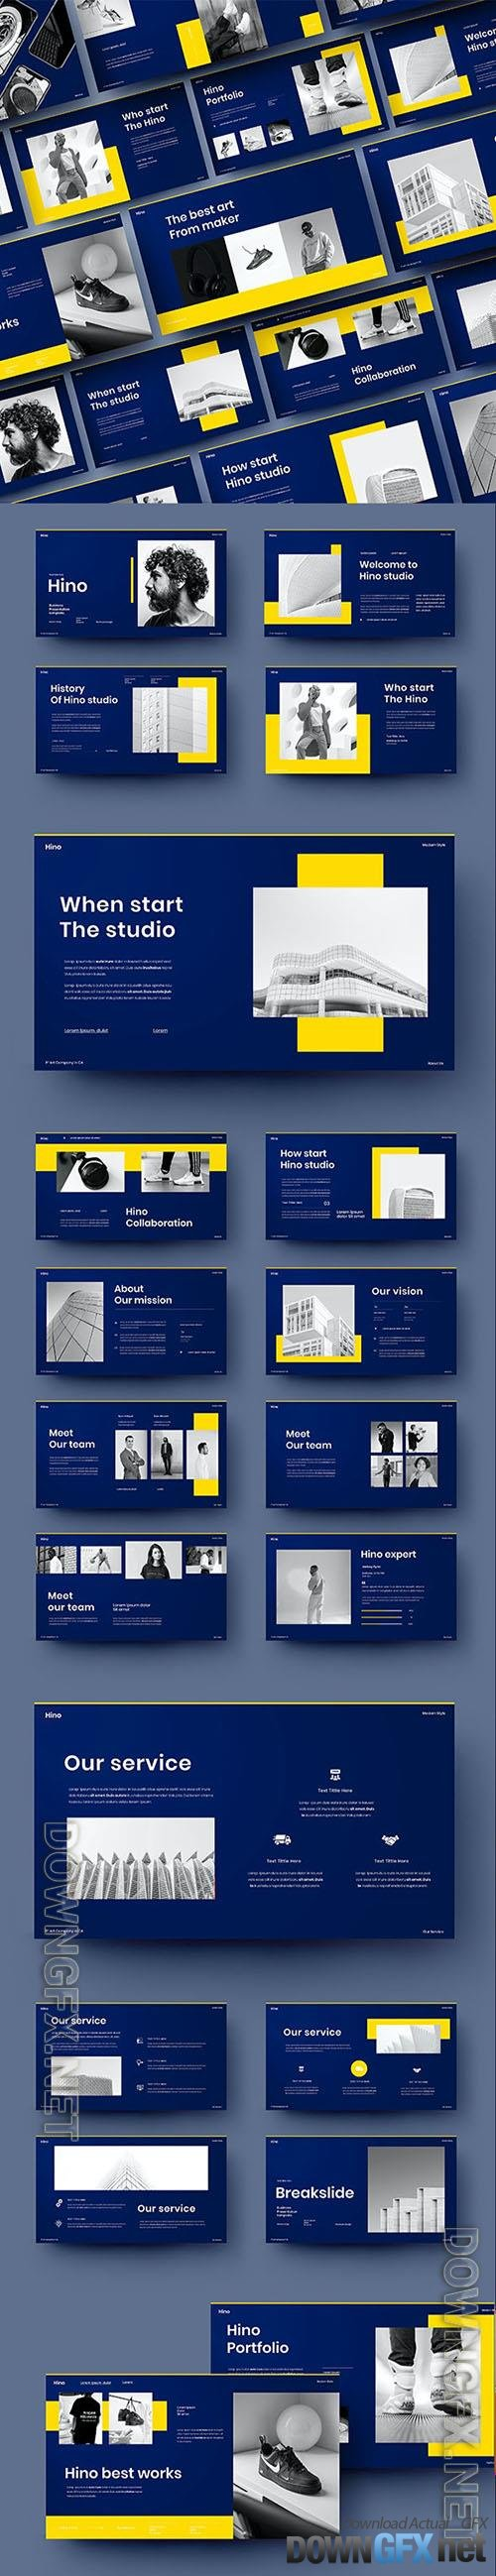 Hino - Business Powerpoint, Keynote and Google Slides Template